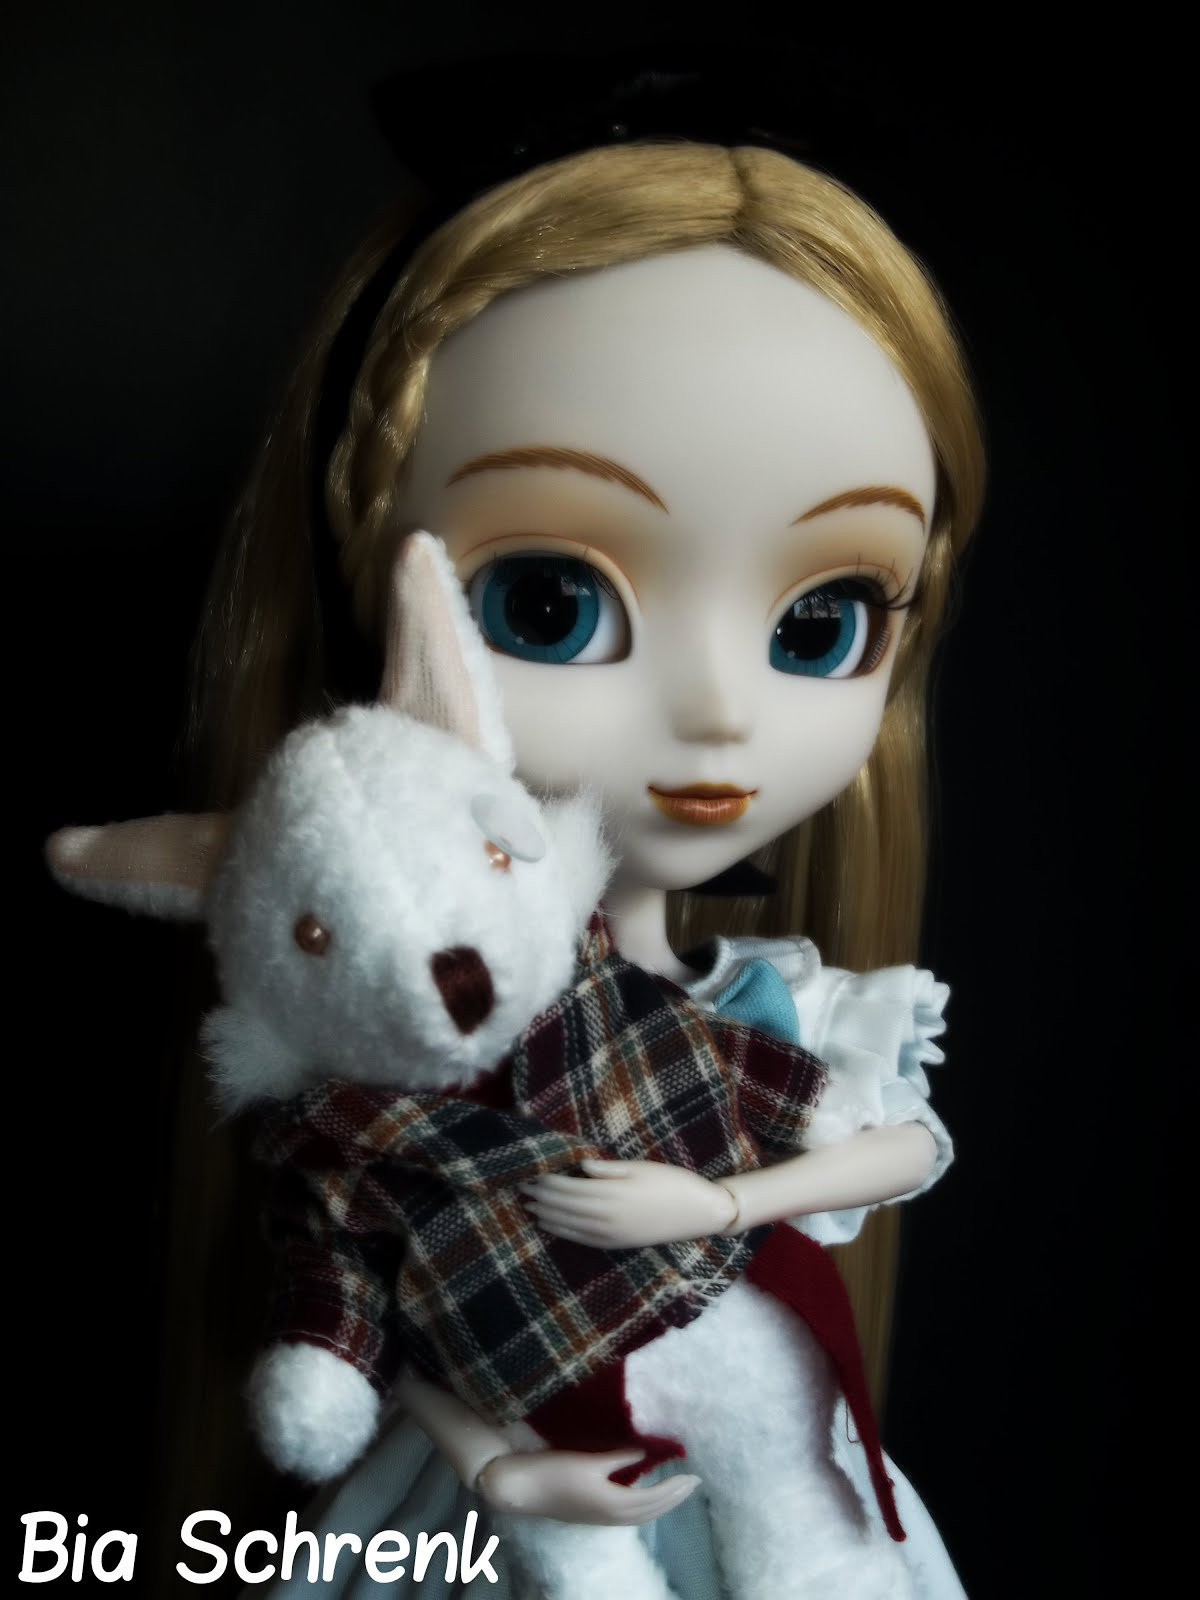 My Pullip Alice in Wonderland Regeneration